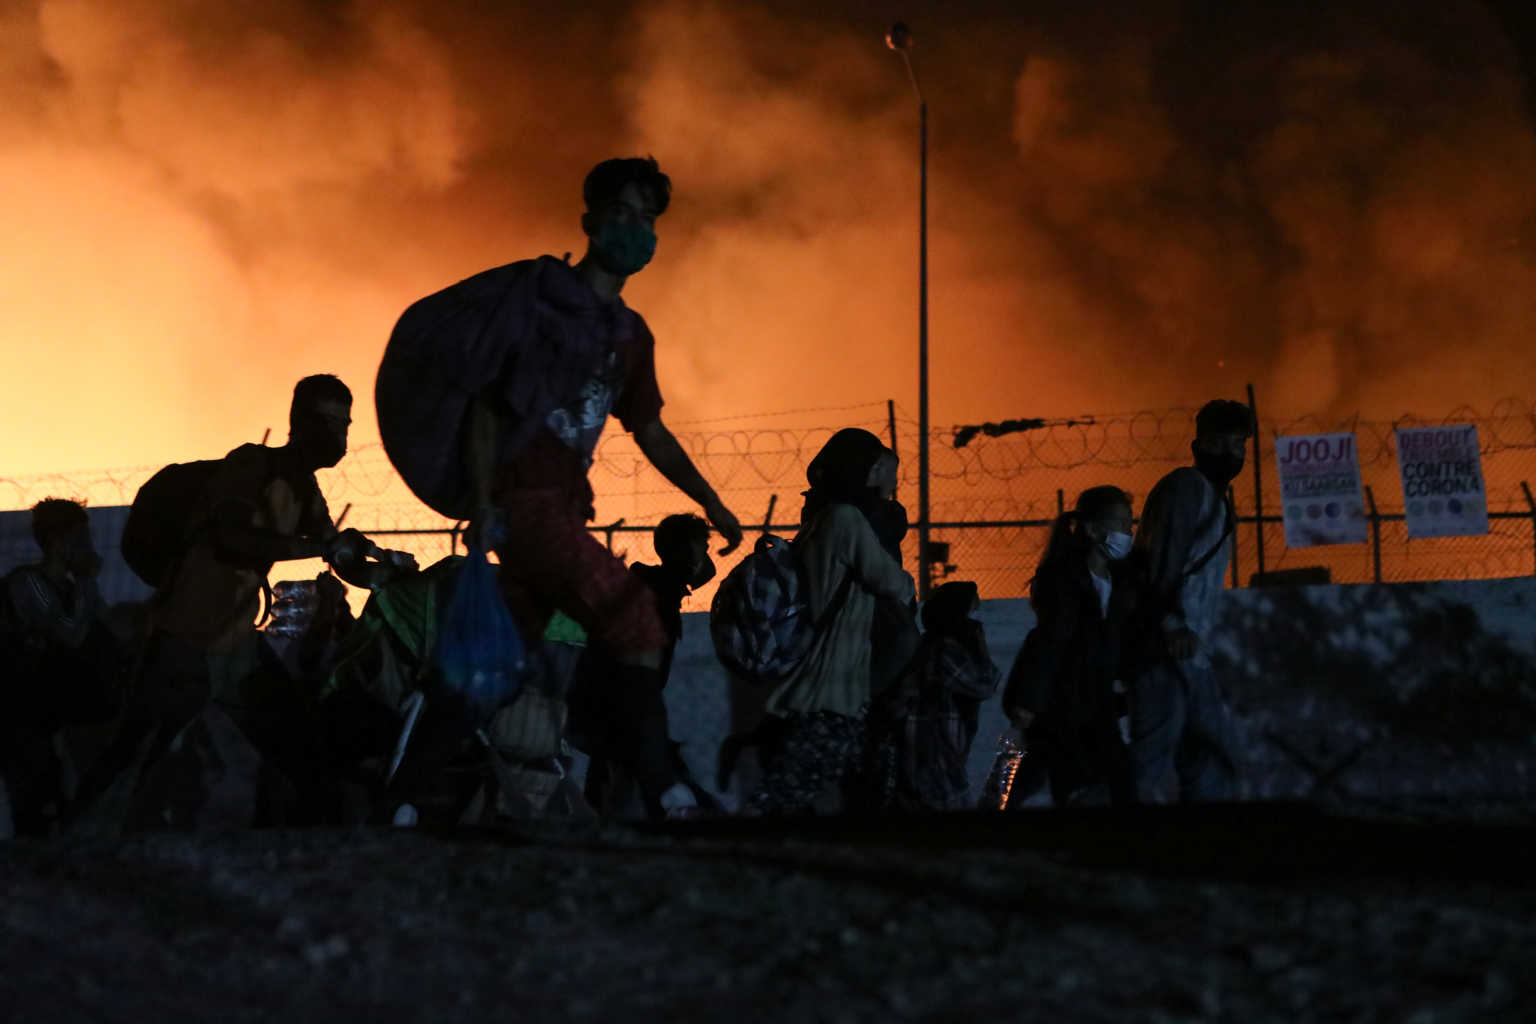 Fire burns at the Moria camp for refugees and migrants on the island of Lesbos